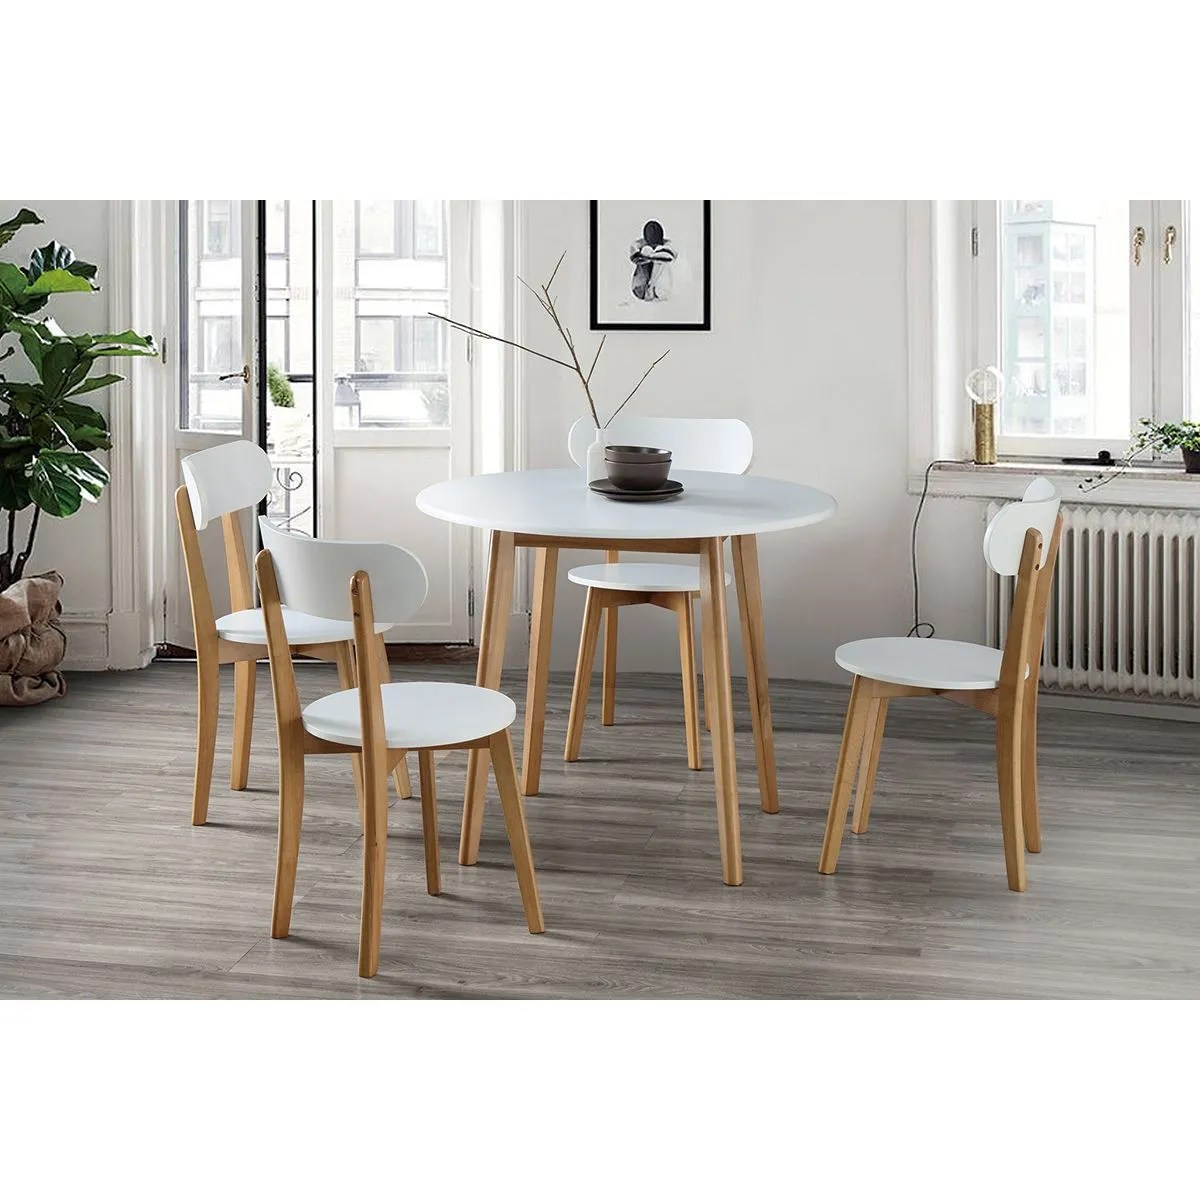 مثير ضمادة لا يصدق table a manger bois et blanc amazon